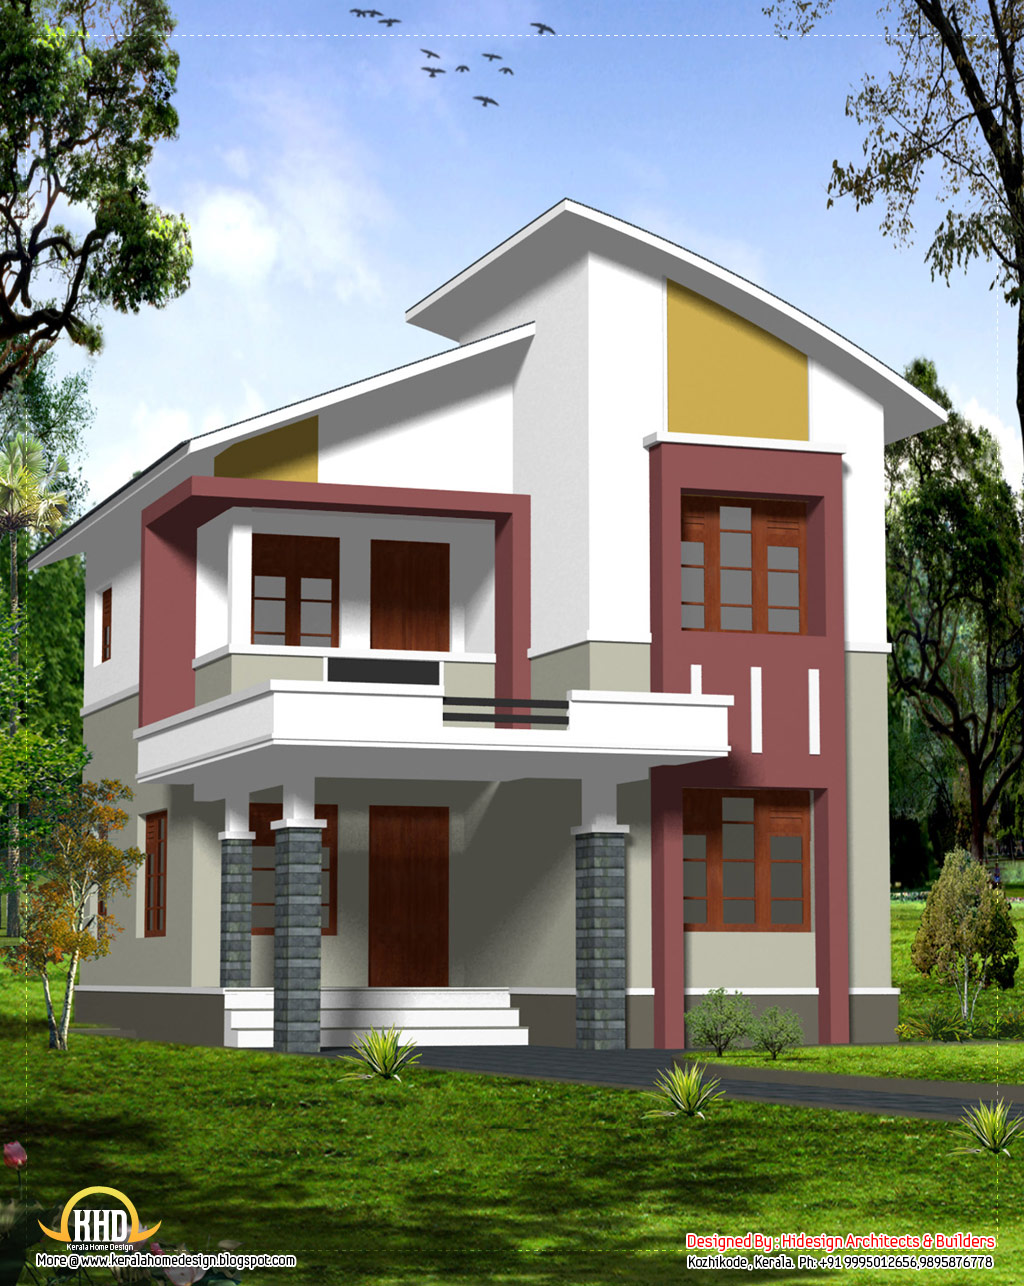 Budget home design 2140 sq ft kerala home design and for Design house